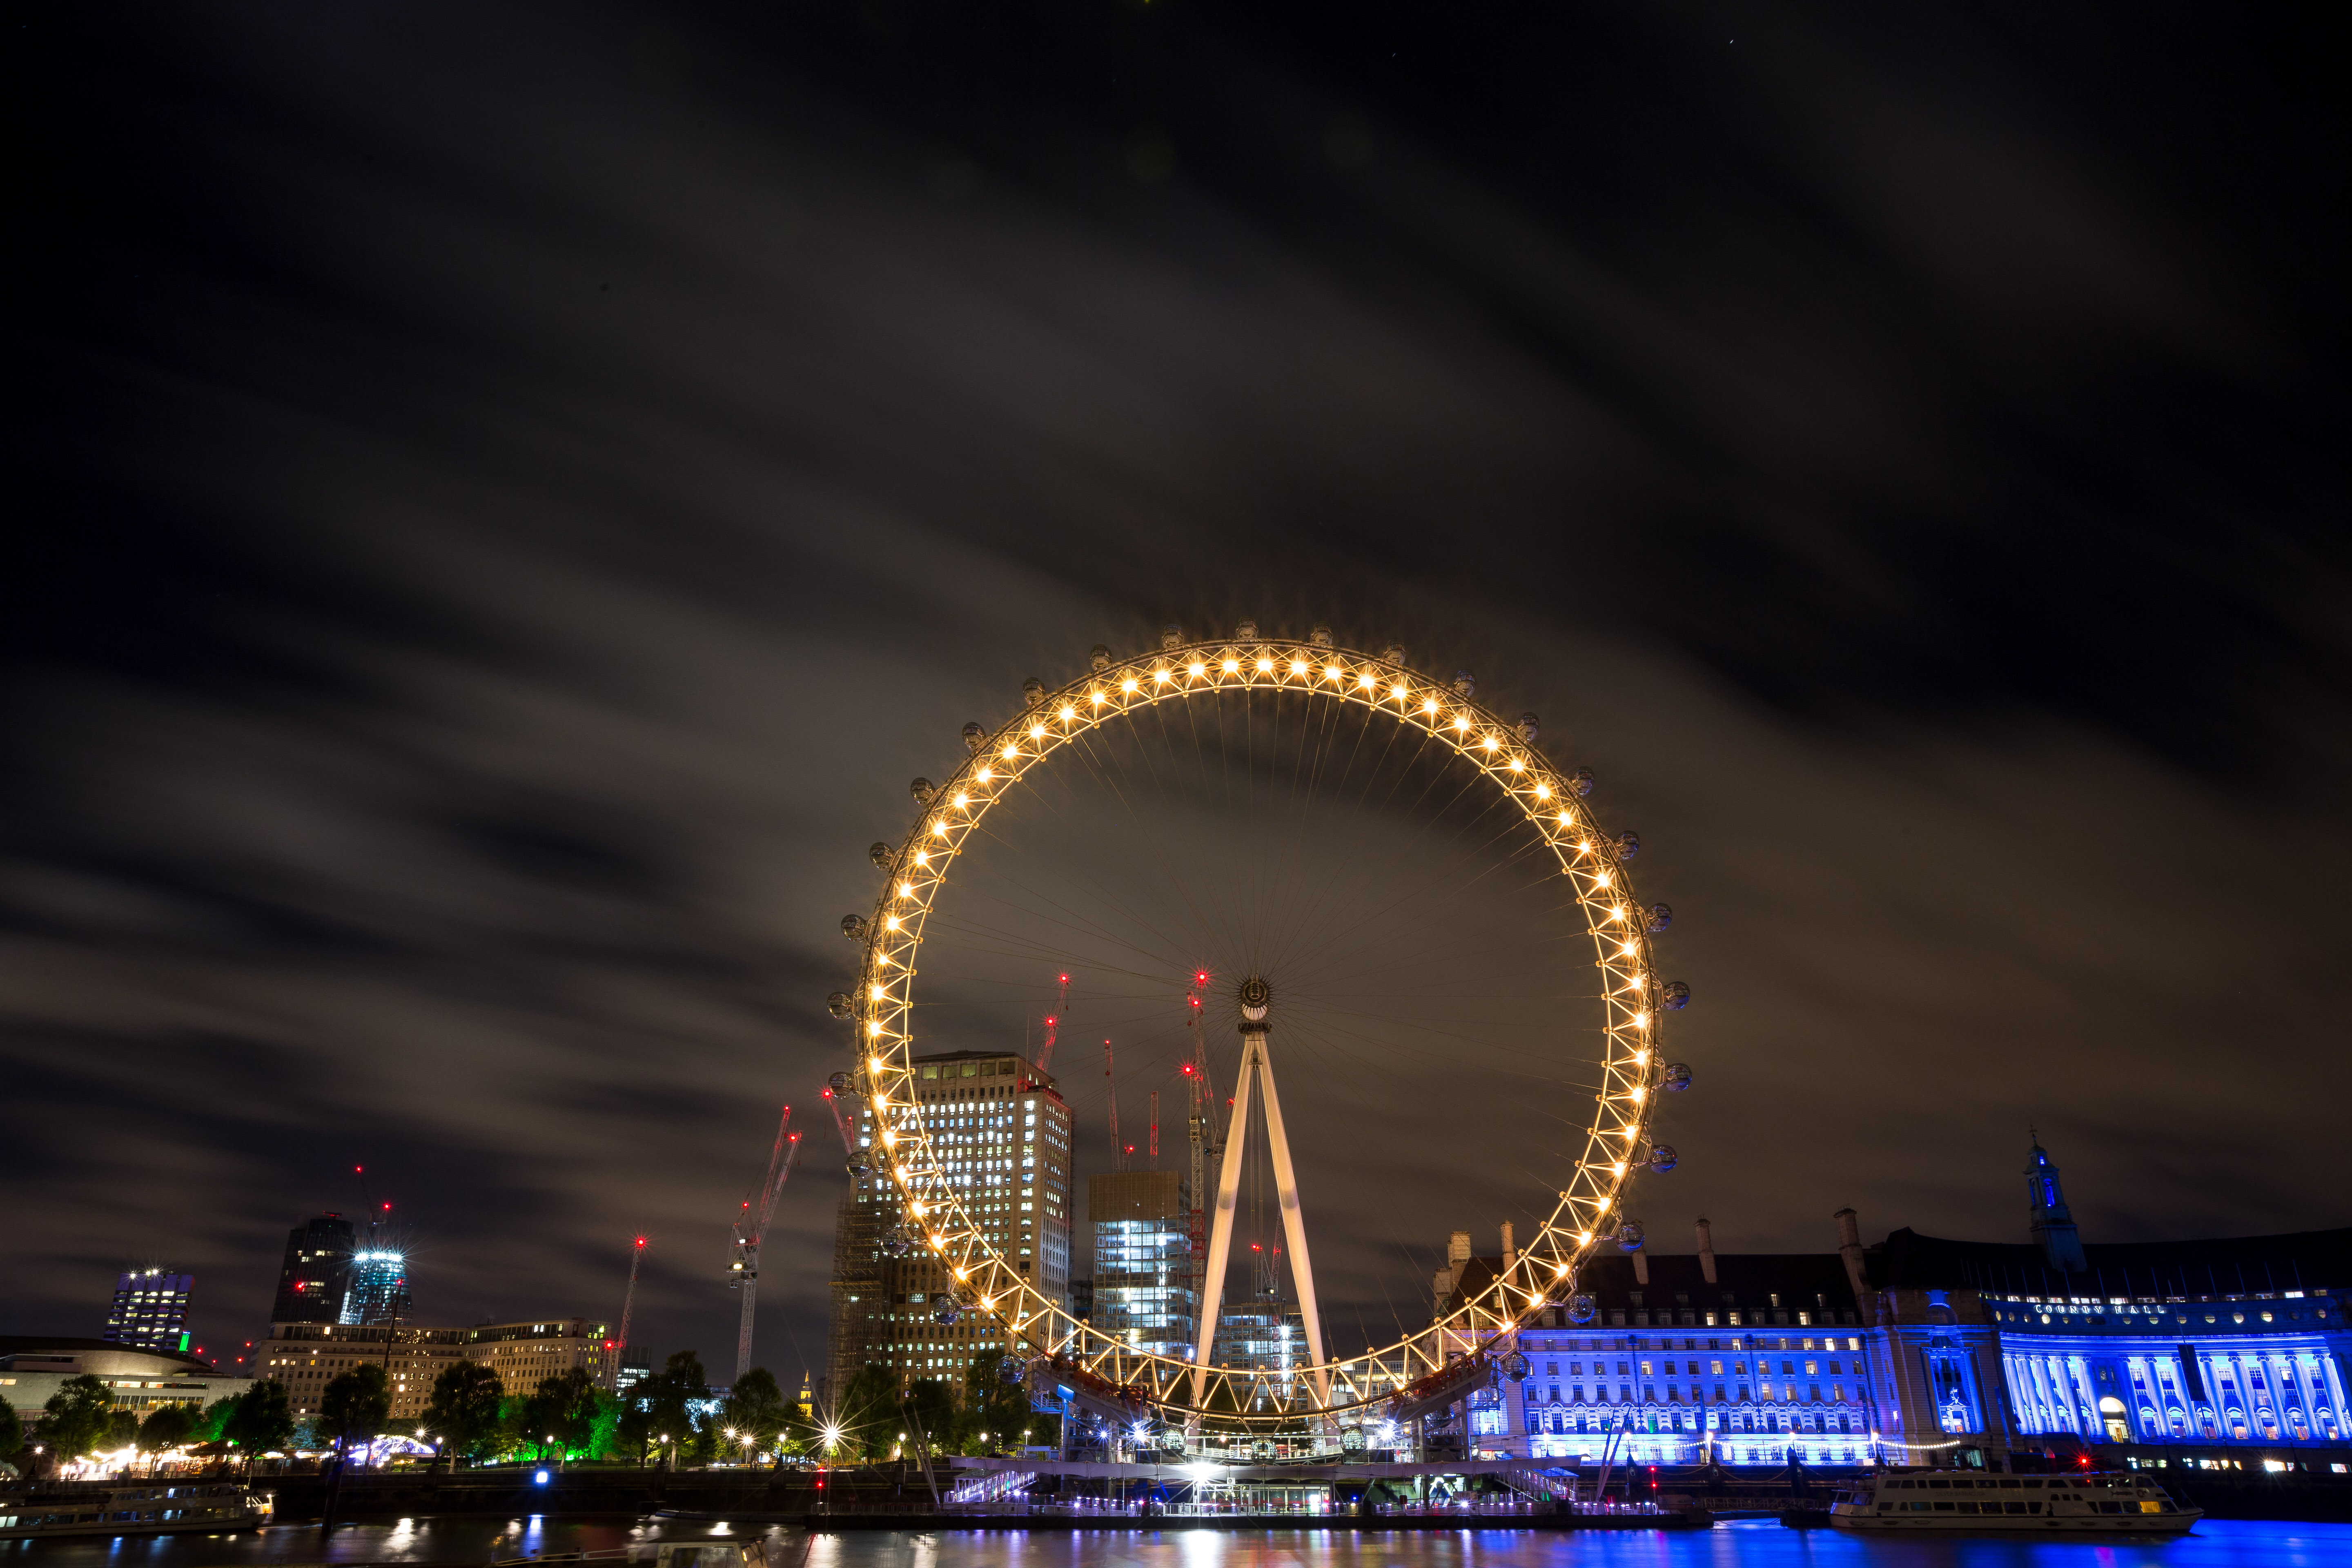 The Coca-Cola London Eye shines yellow in the London night sky